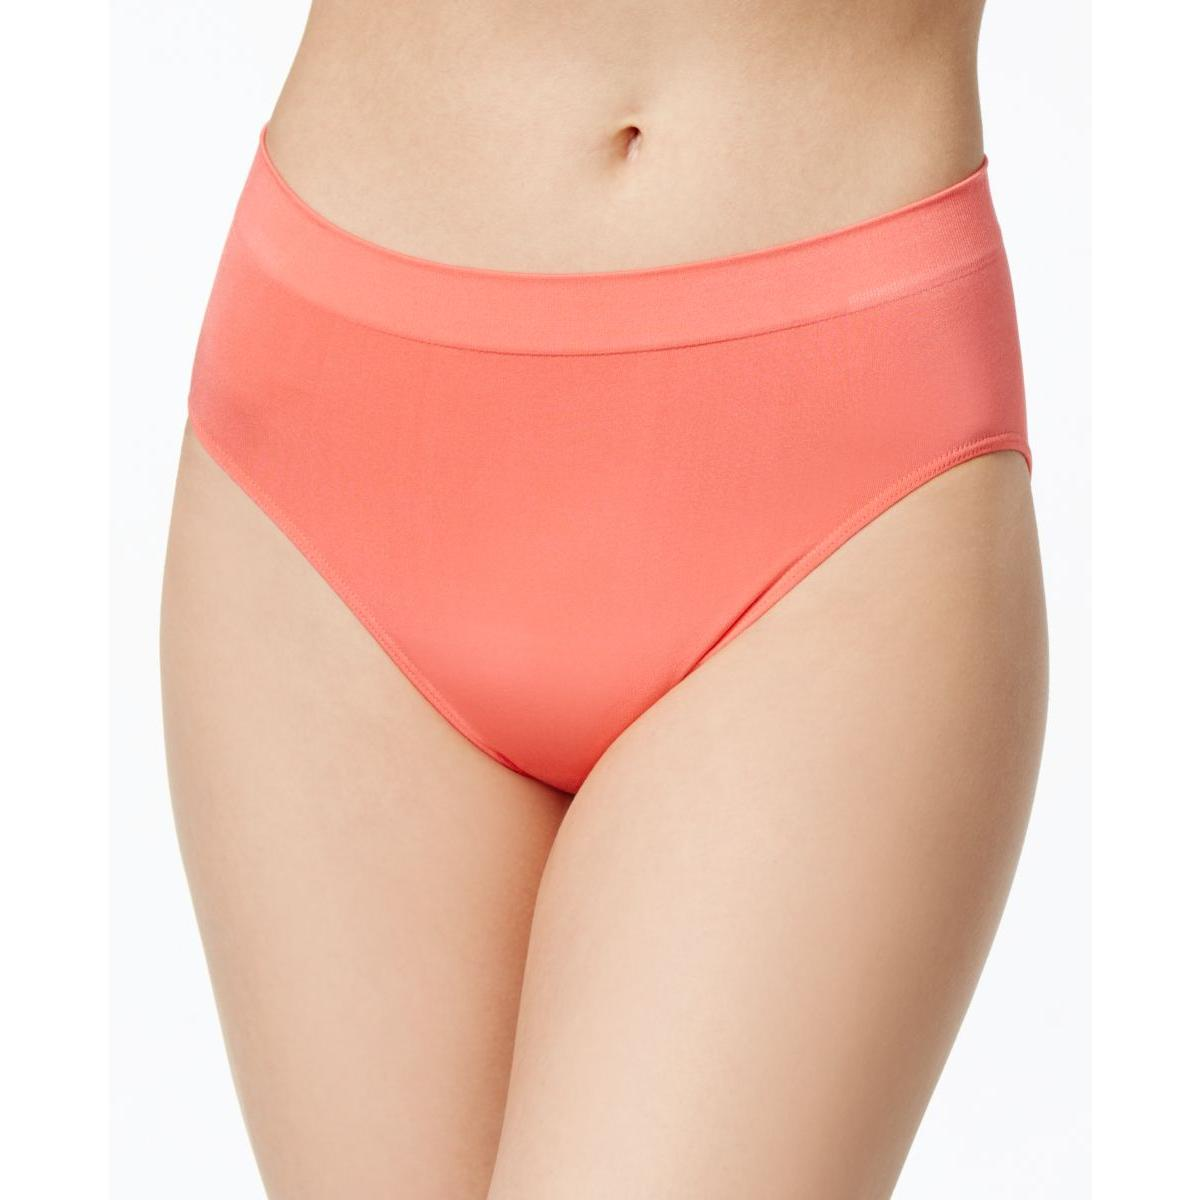 26808cfdb7 Details about Wacoal Womens B Smooth Pink High Cut Underwear Solid Brief  Panty M BHFO 0965